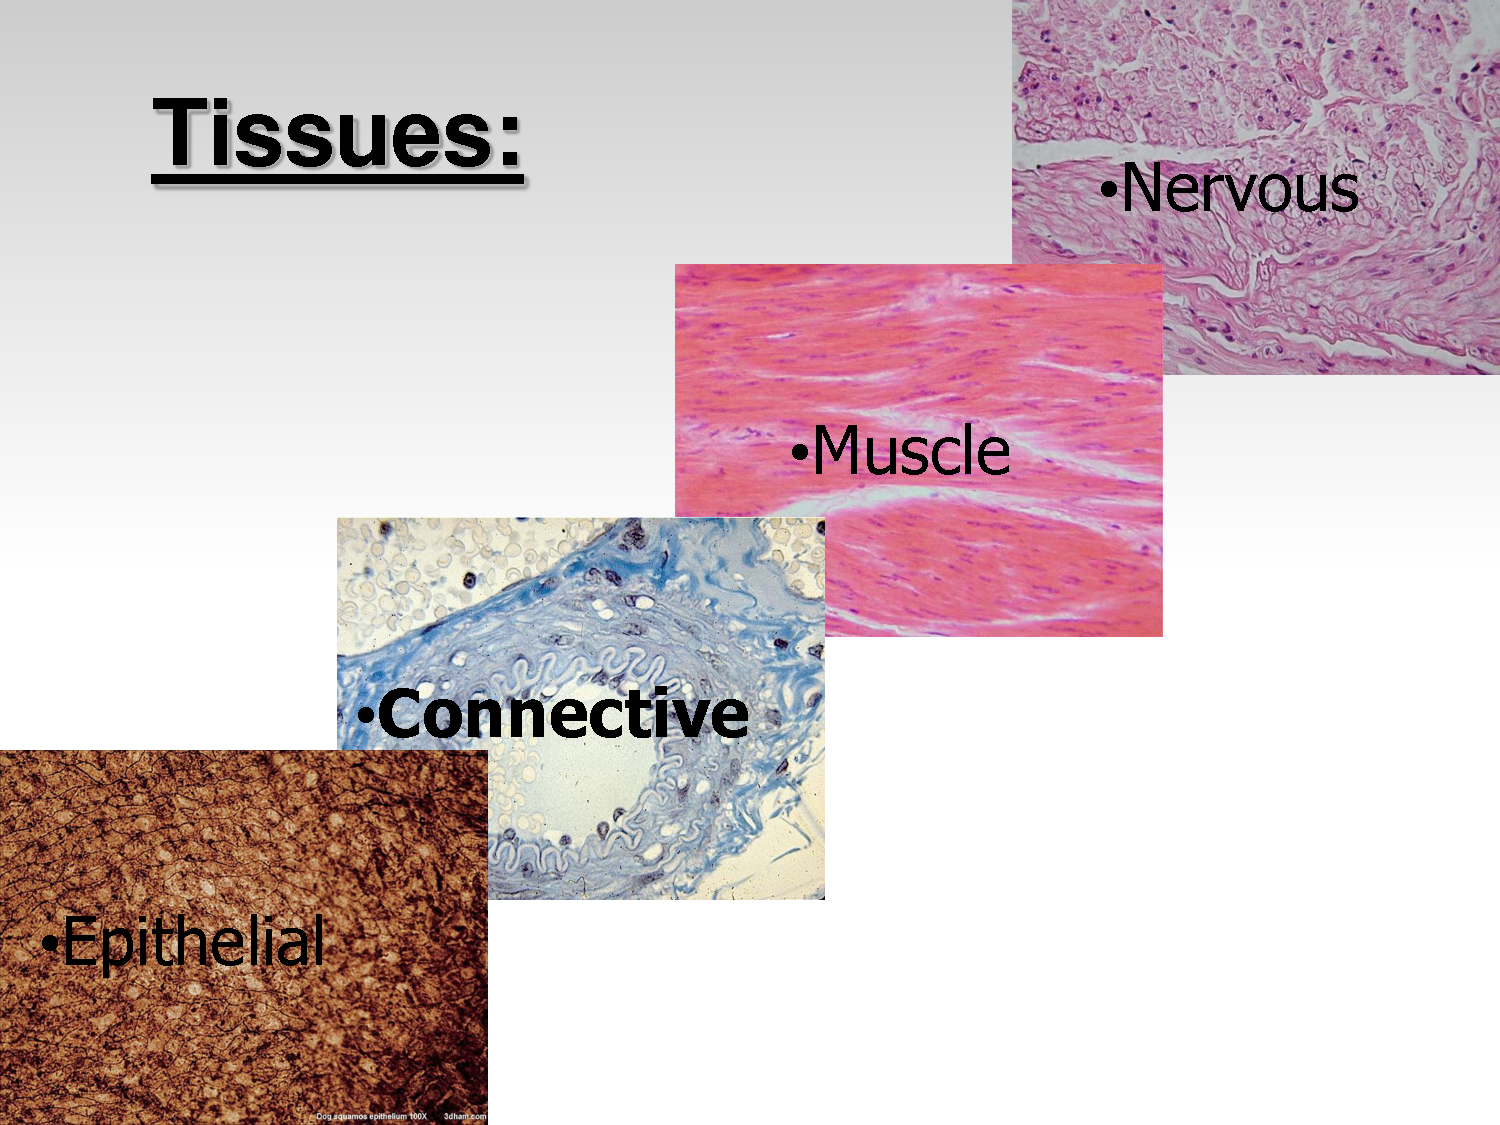 tissue types in the human body The four basic types of tissue in the human body are connective, epithelial, muscular, and nervous.